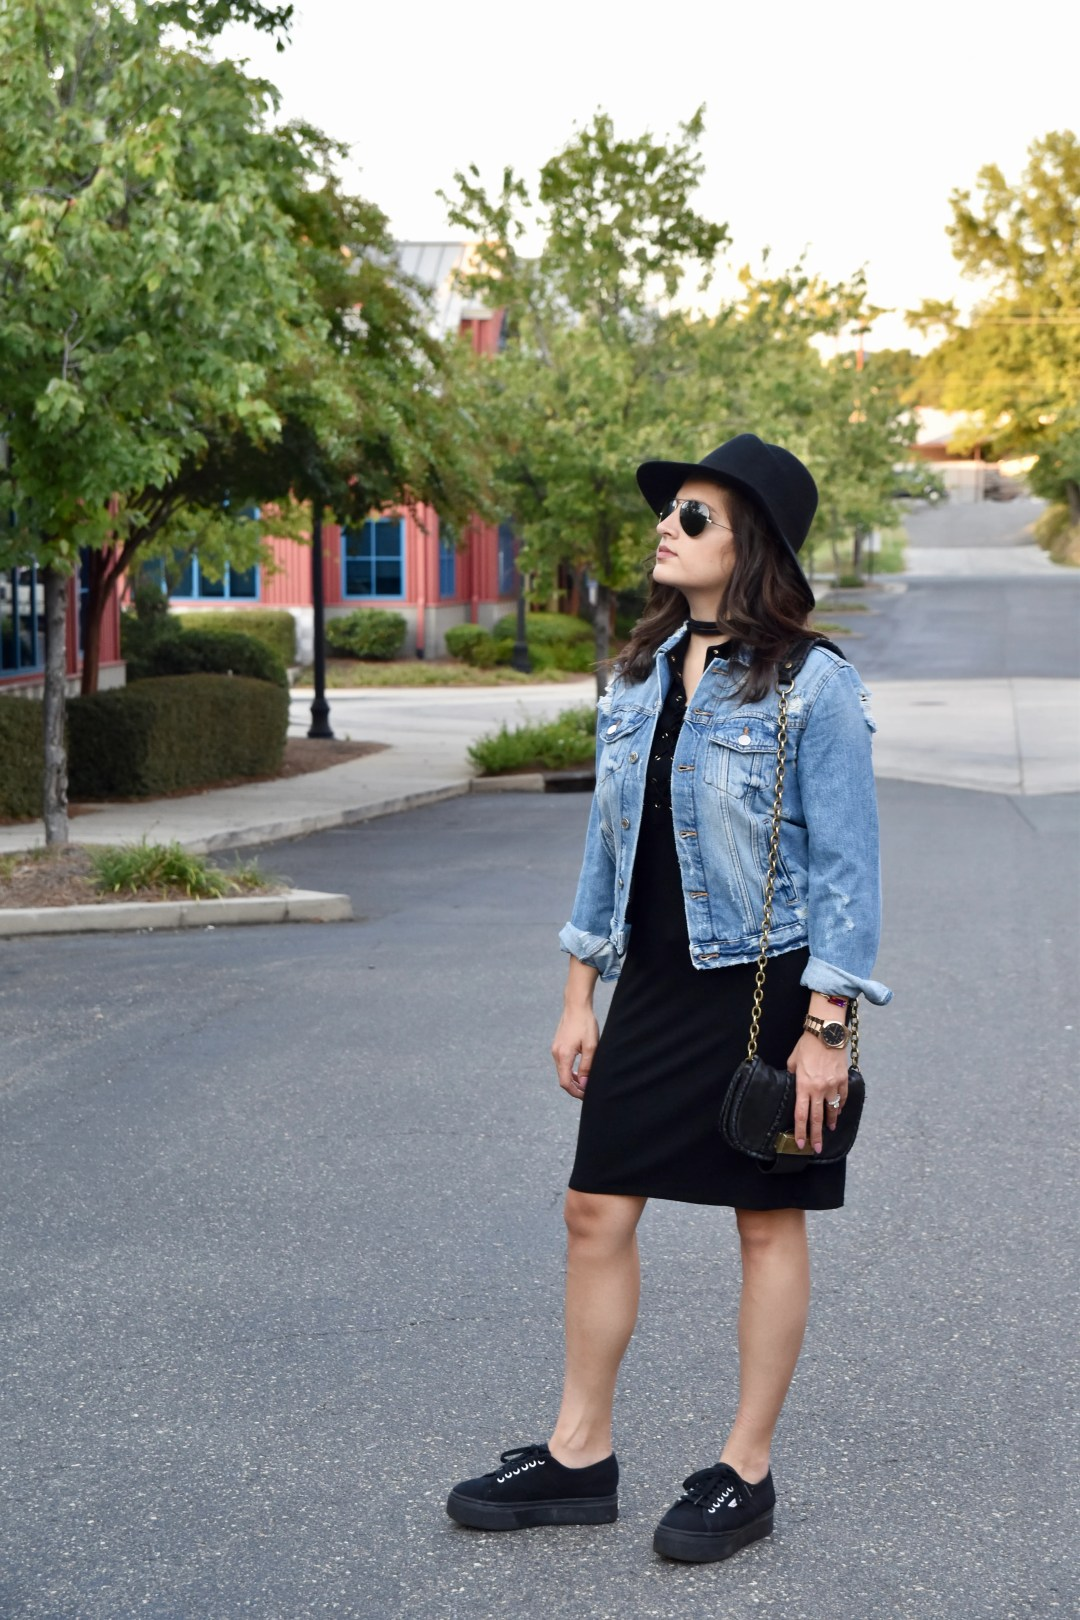 Dania outfit post in black dress, superga, jean jacket, and hat